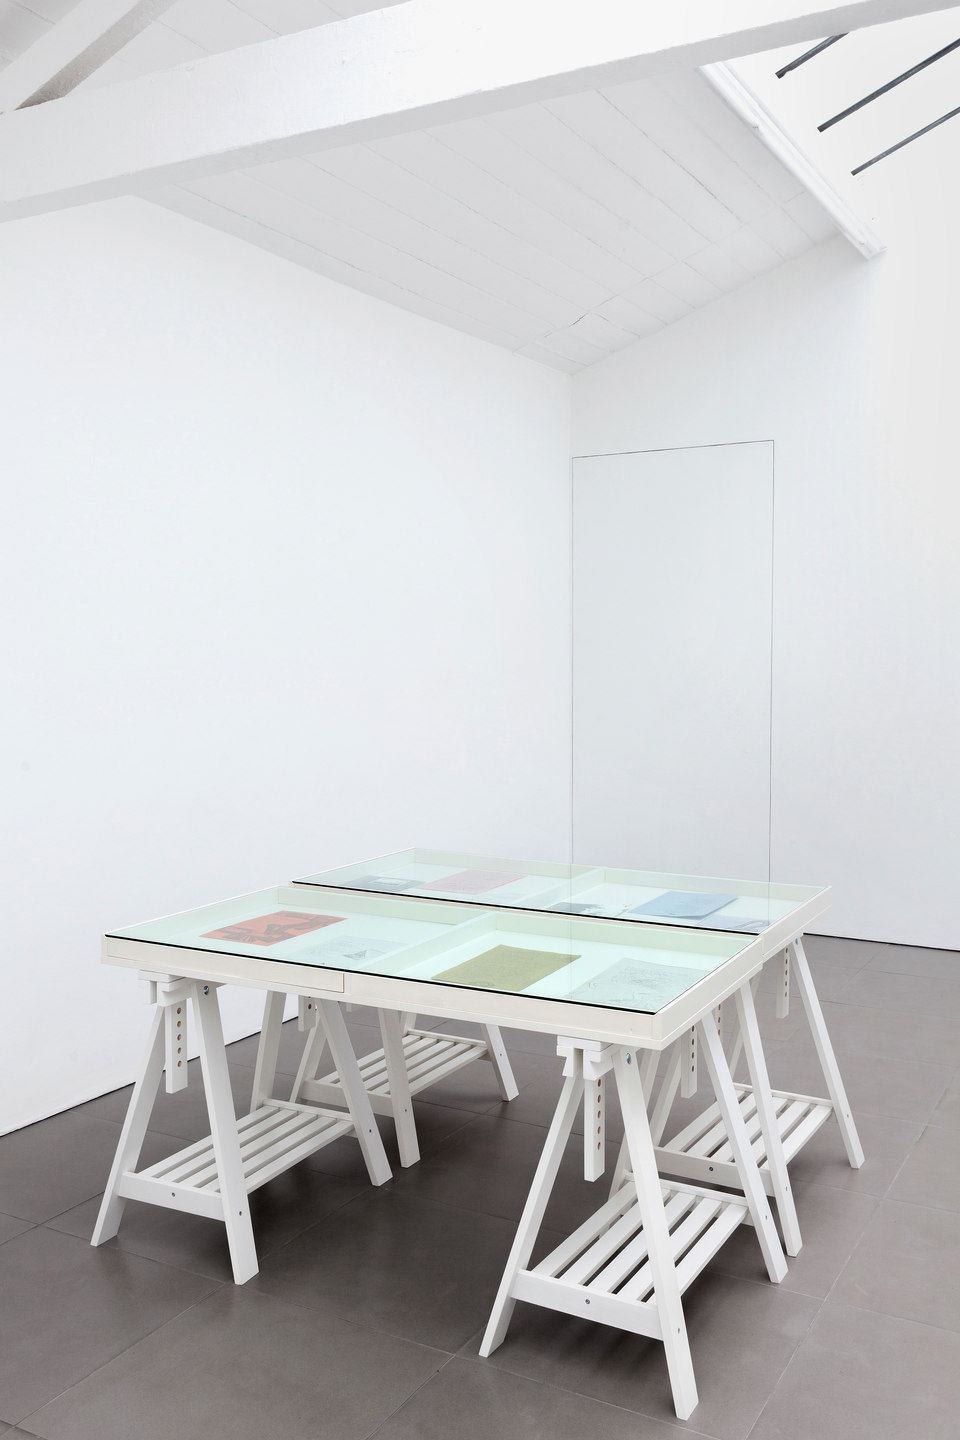 Barbara T Smith, The Poetry Sets, Installation View, 2015, Cell Projects